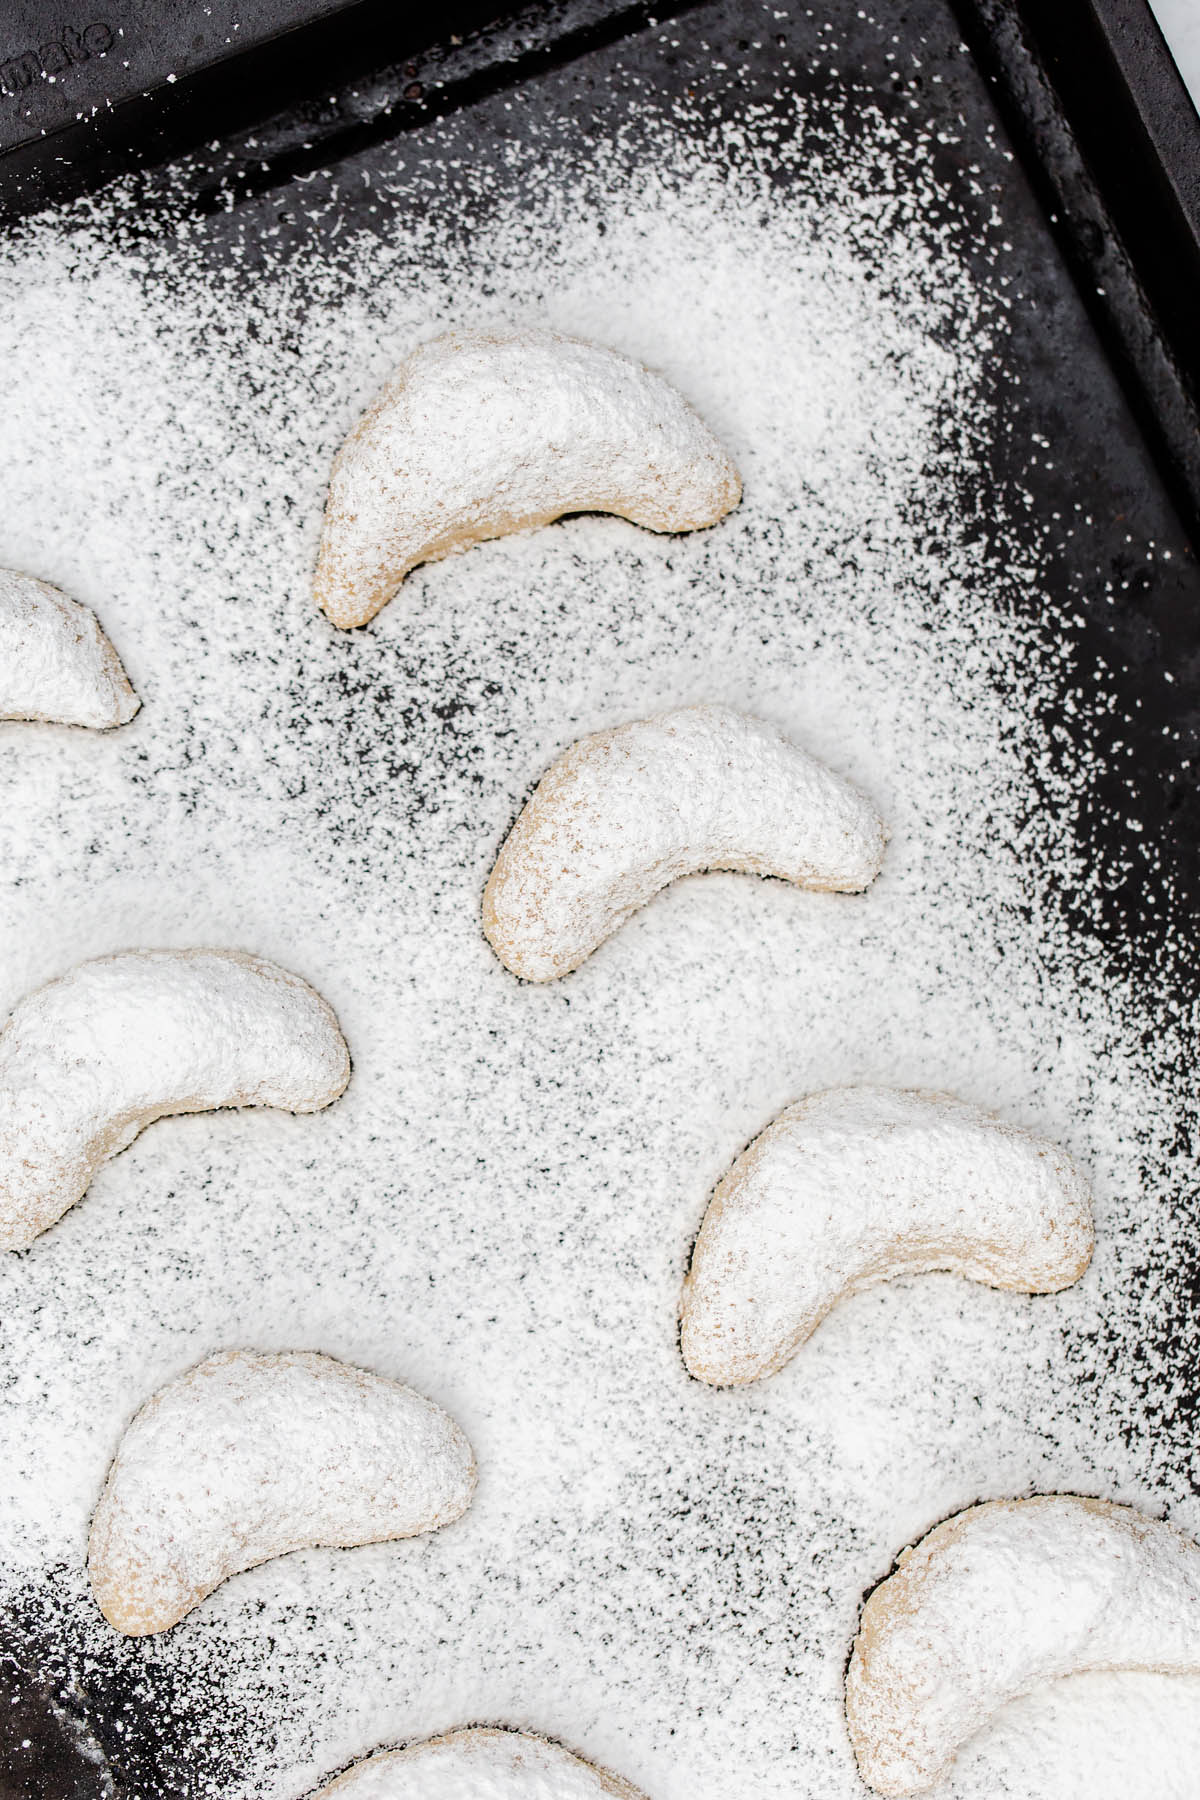 walnut cookies dusted with powdered sugar